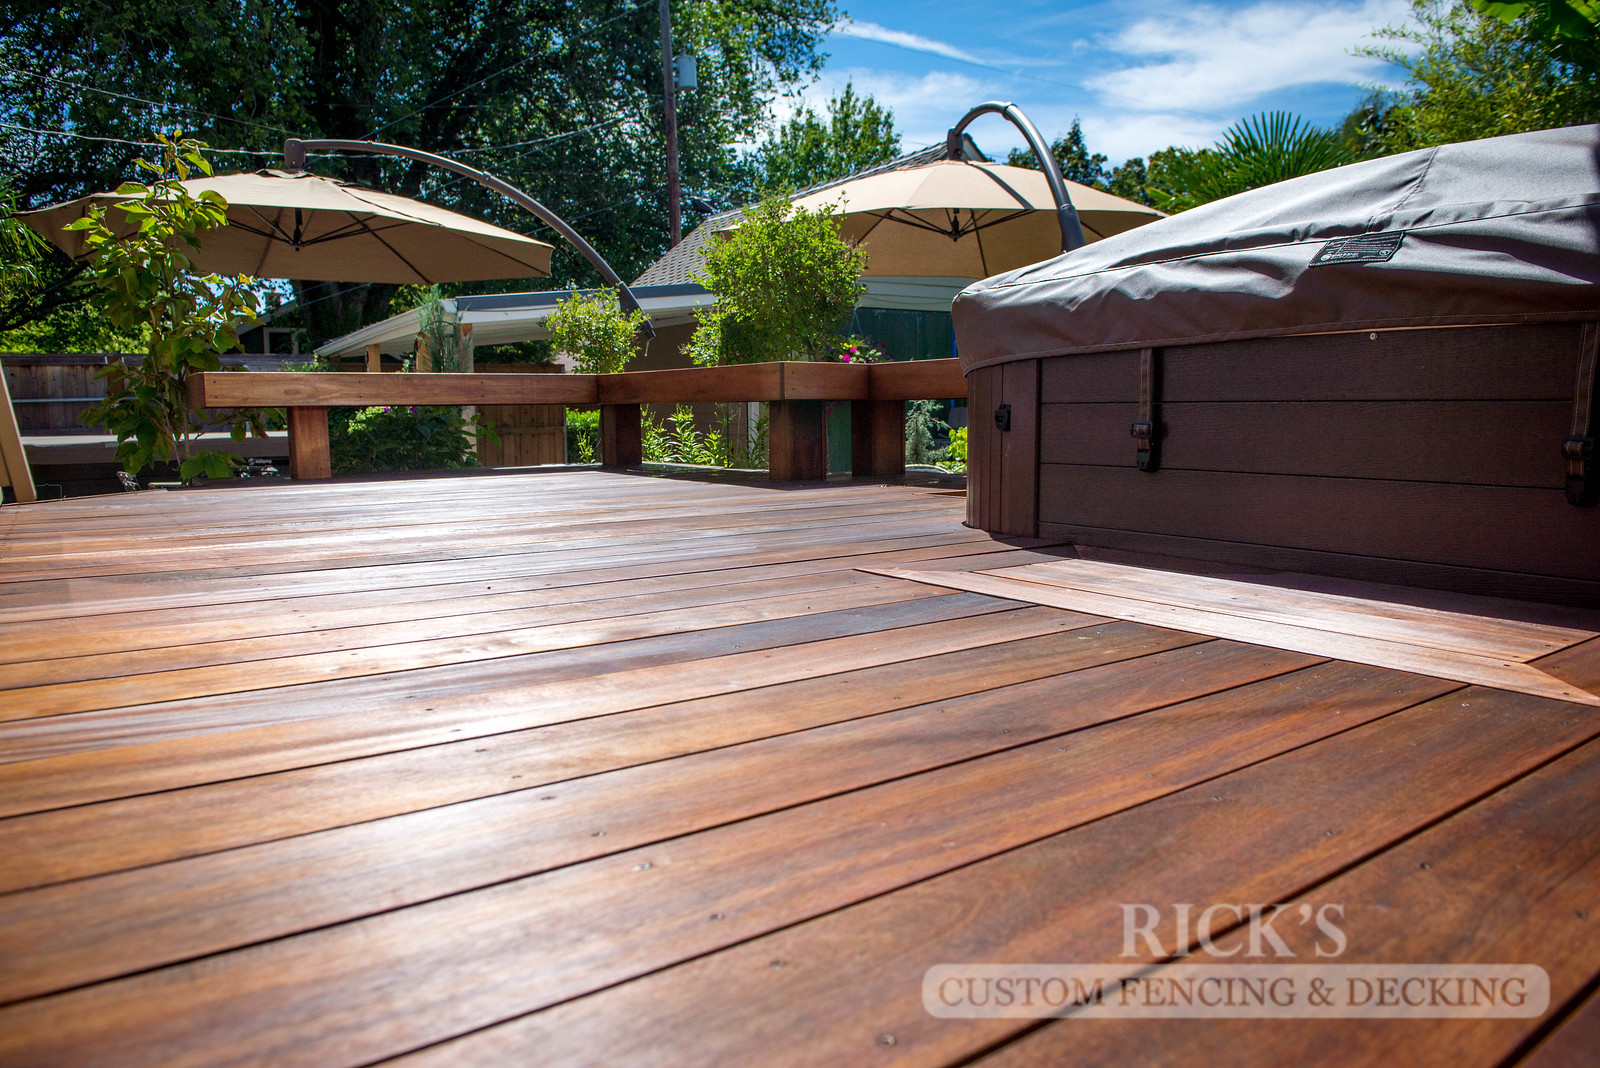 1101 - TigerWood Hardwood Decking